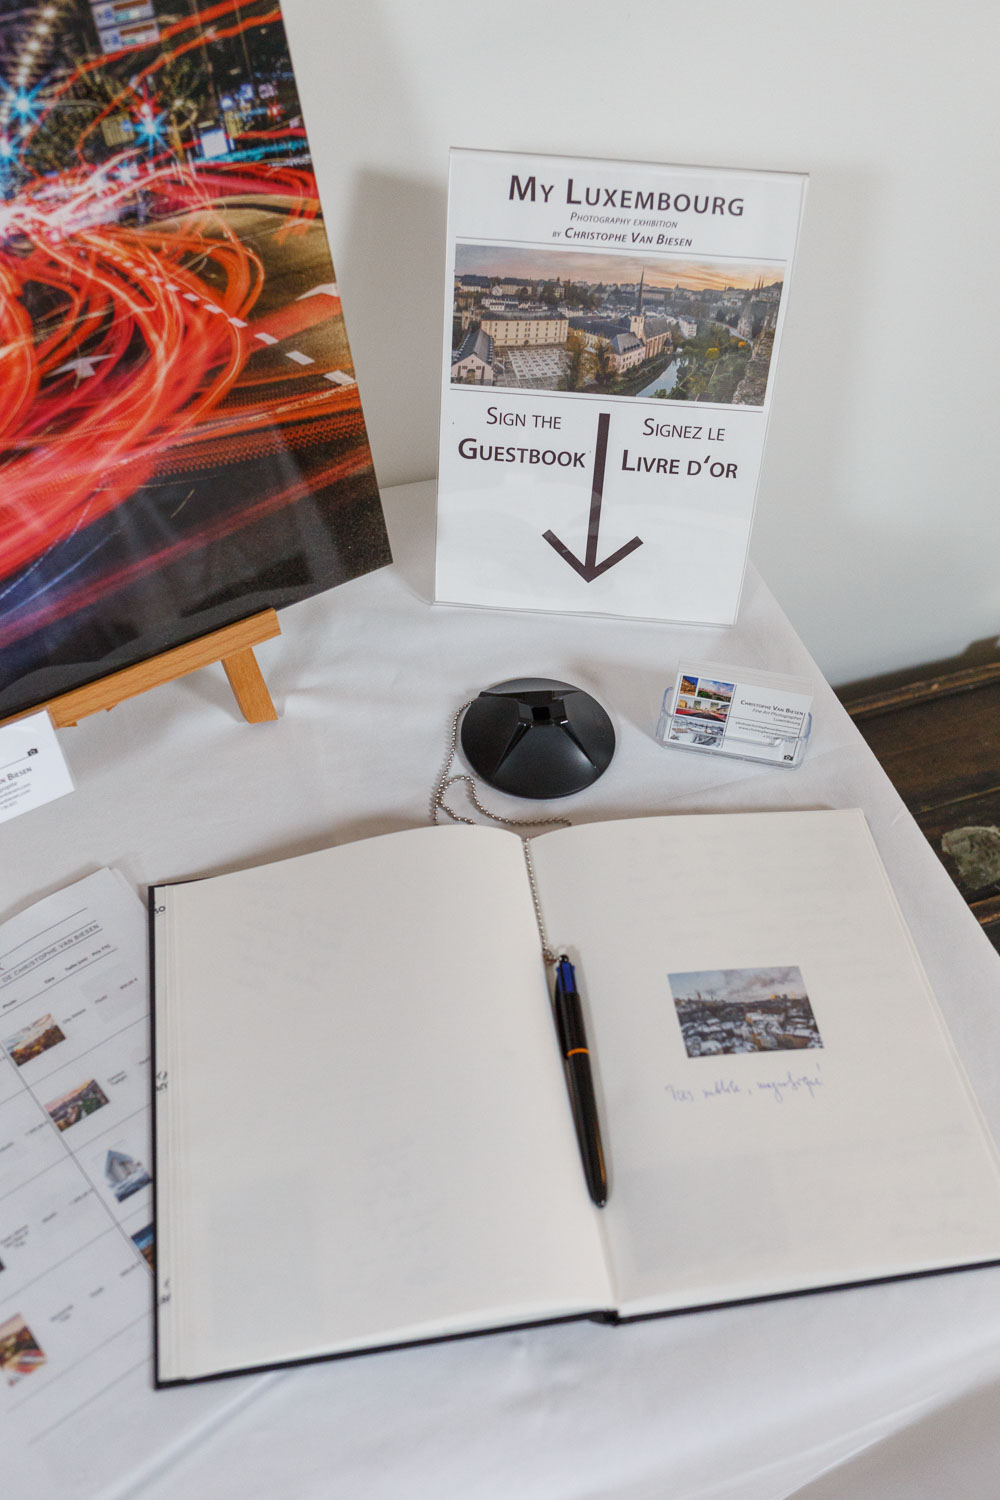 Sign my guest book at the photography exhibition at the Yves Radelet in Drauffelt in the North of Luxembourg